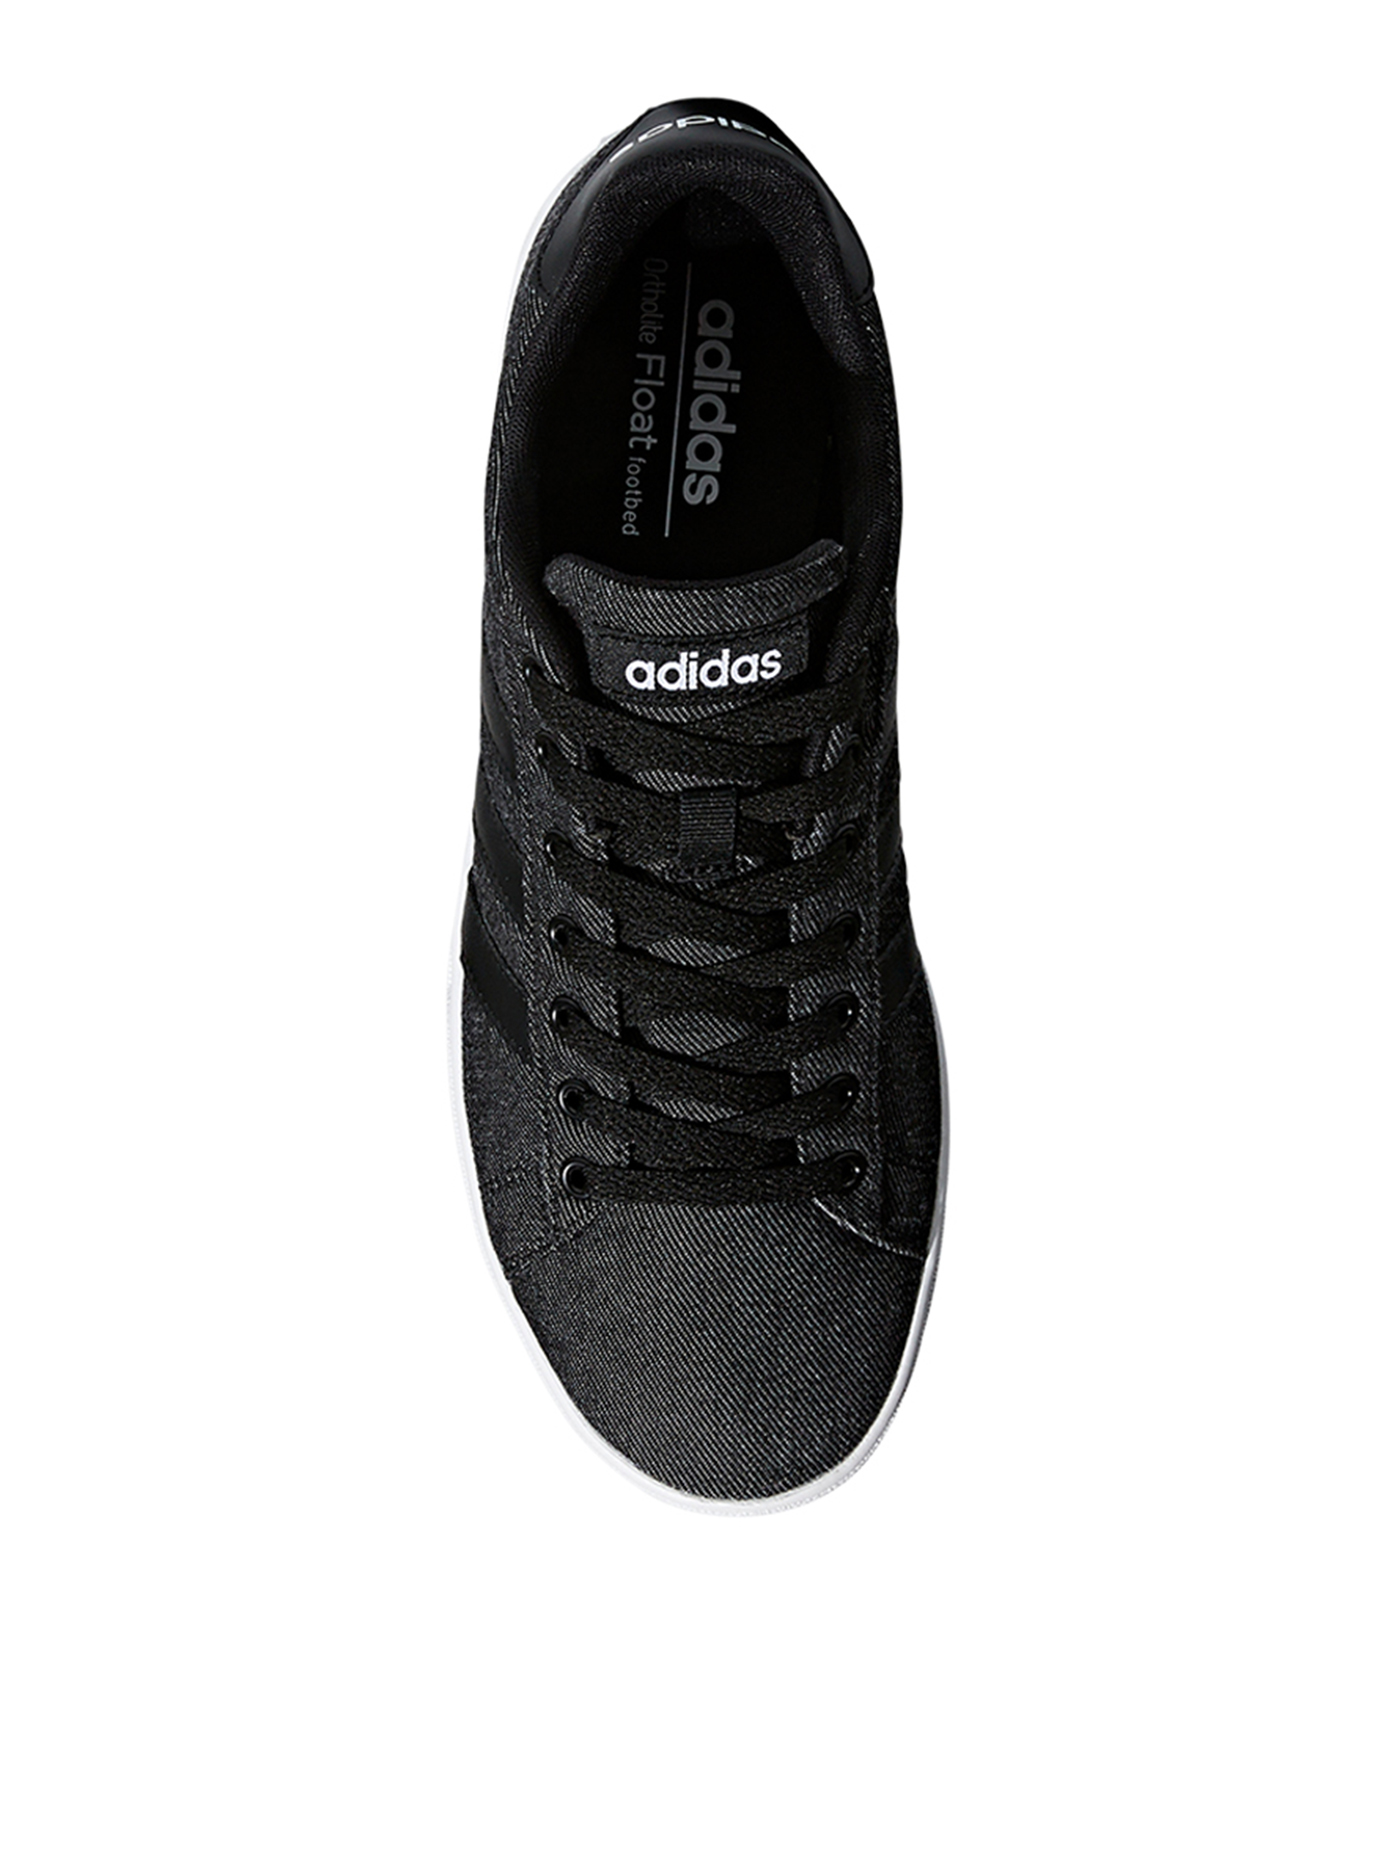 ADIDAS NEO Men s Casual Shoes Daily 2.0 Black Size 7  8a1773bd4